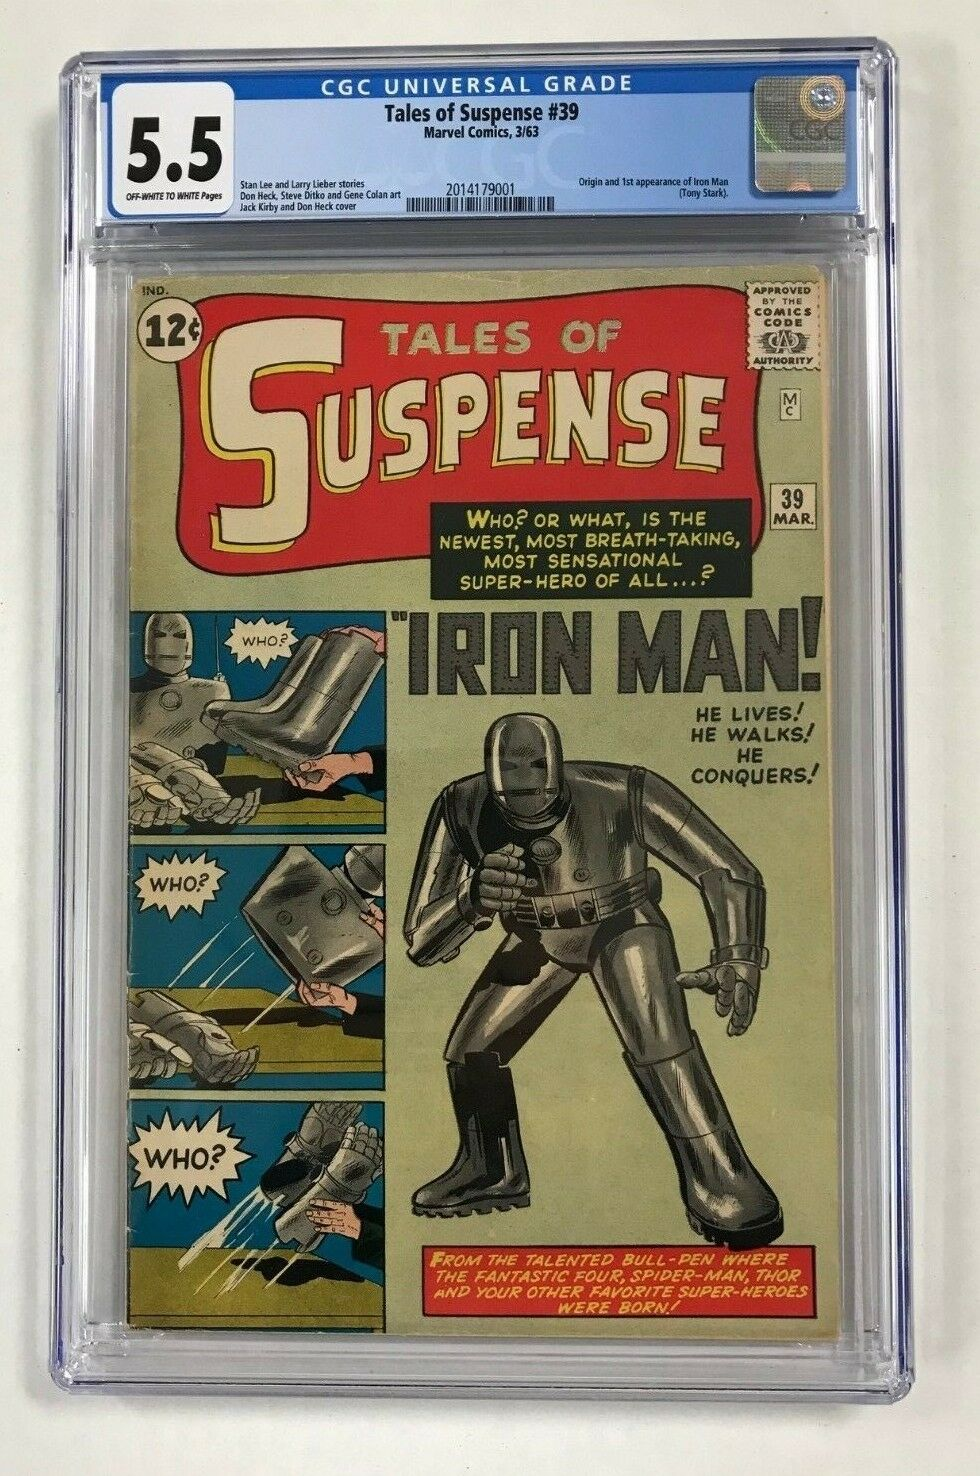 Tales of Suspense #39 Marvel Comics 1963 First appearance of Iron Man Stan Lee